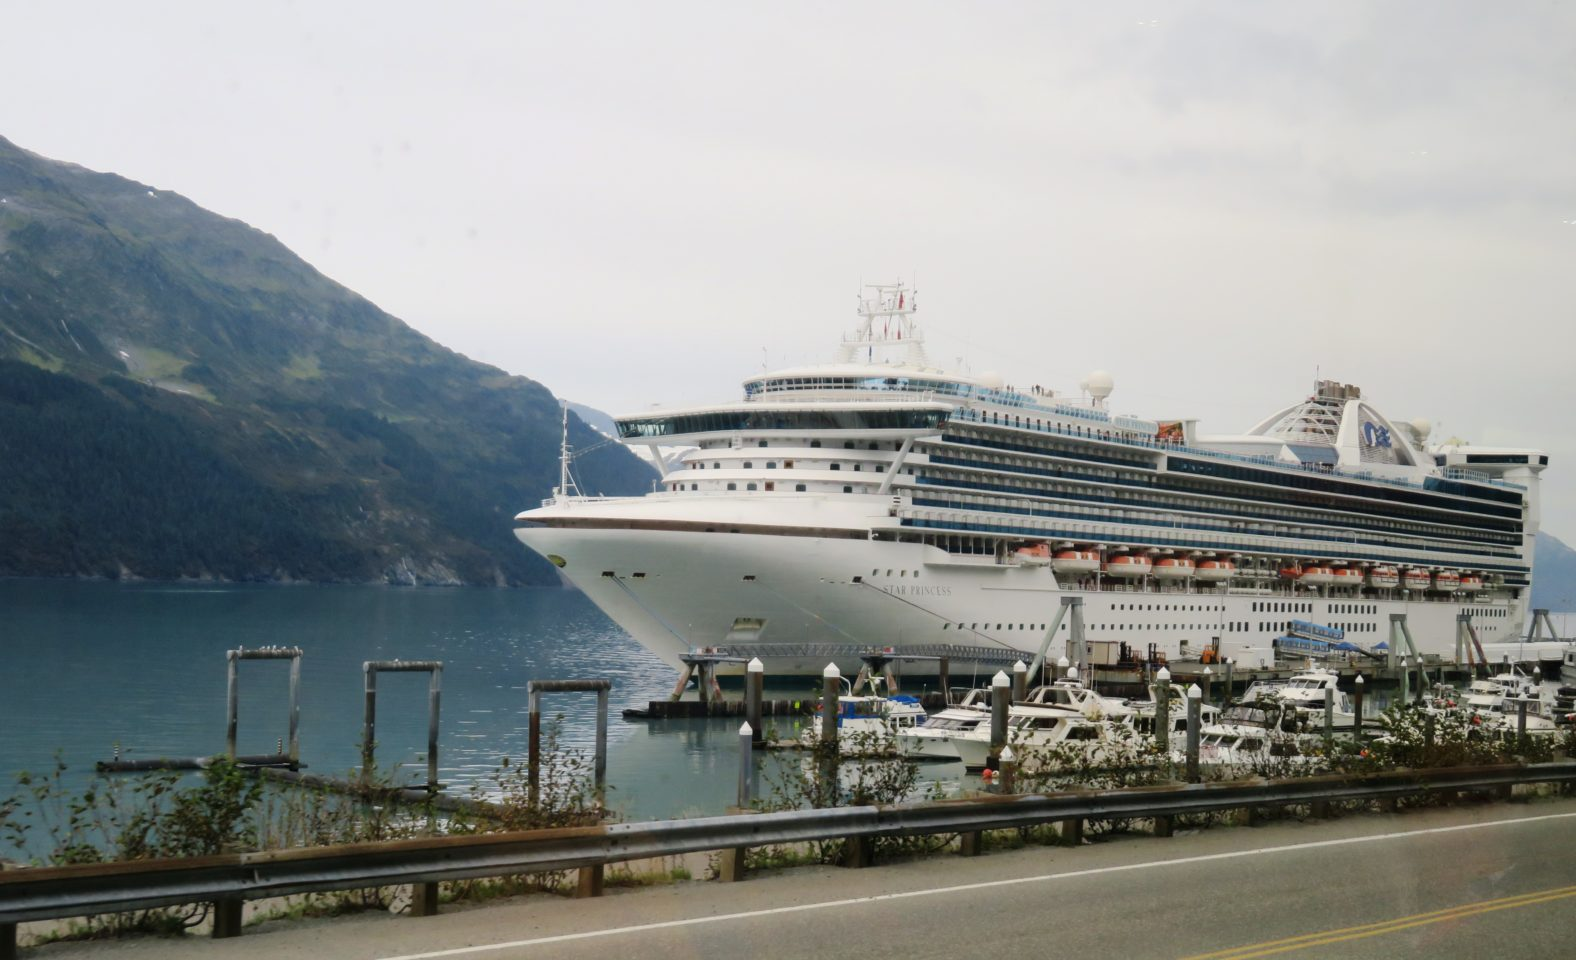 Princess Cruises ship Star Princess waiting at end of Princess Rail rail line ~ Alaska Cruise Tour